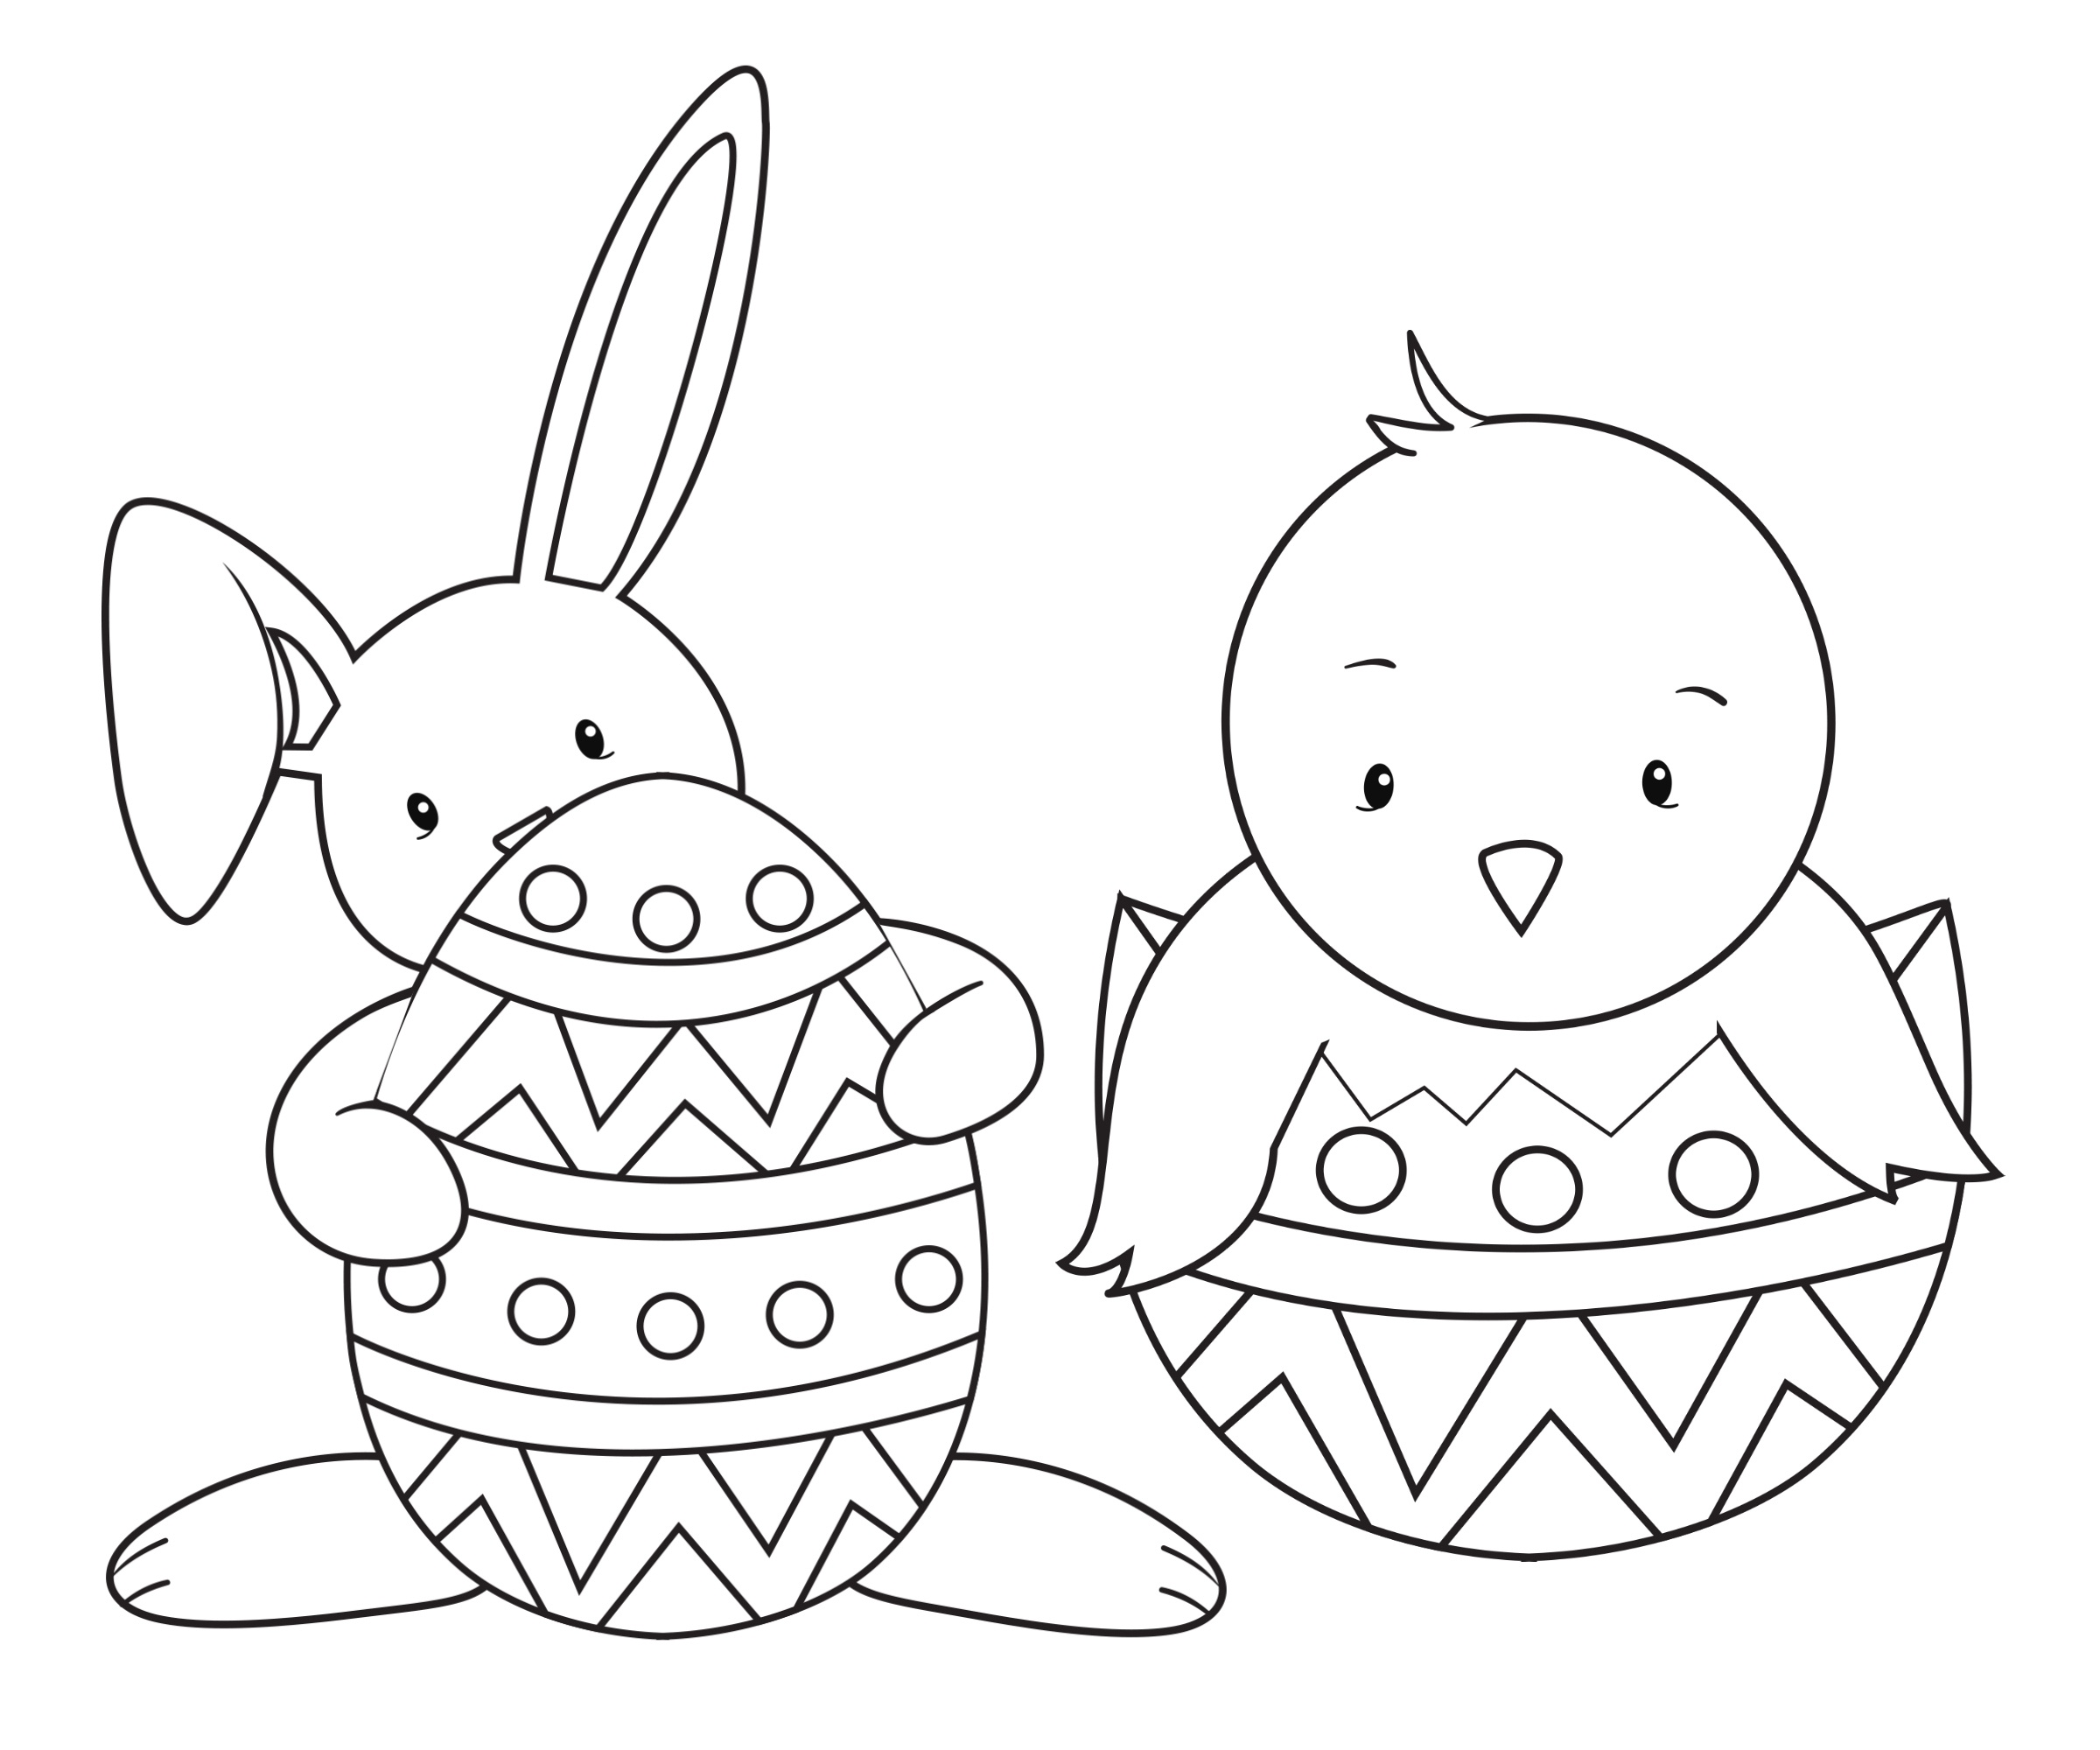 """33 """"happy Easter Coloring Pages"""" Free Printable Pictures For Kids - Free Printable Easter Drawings"""